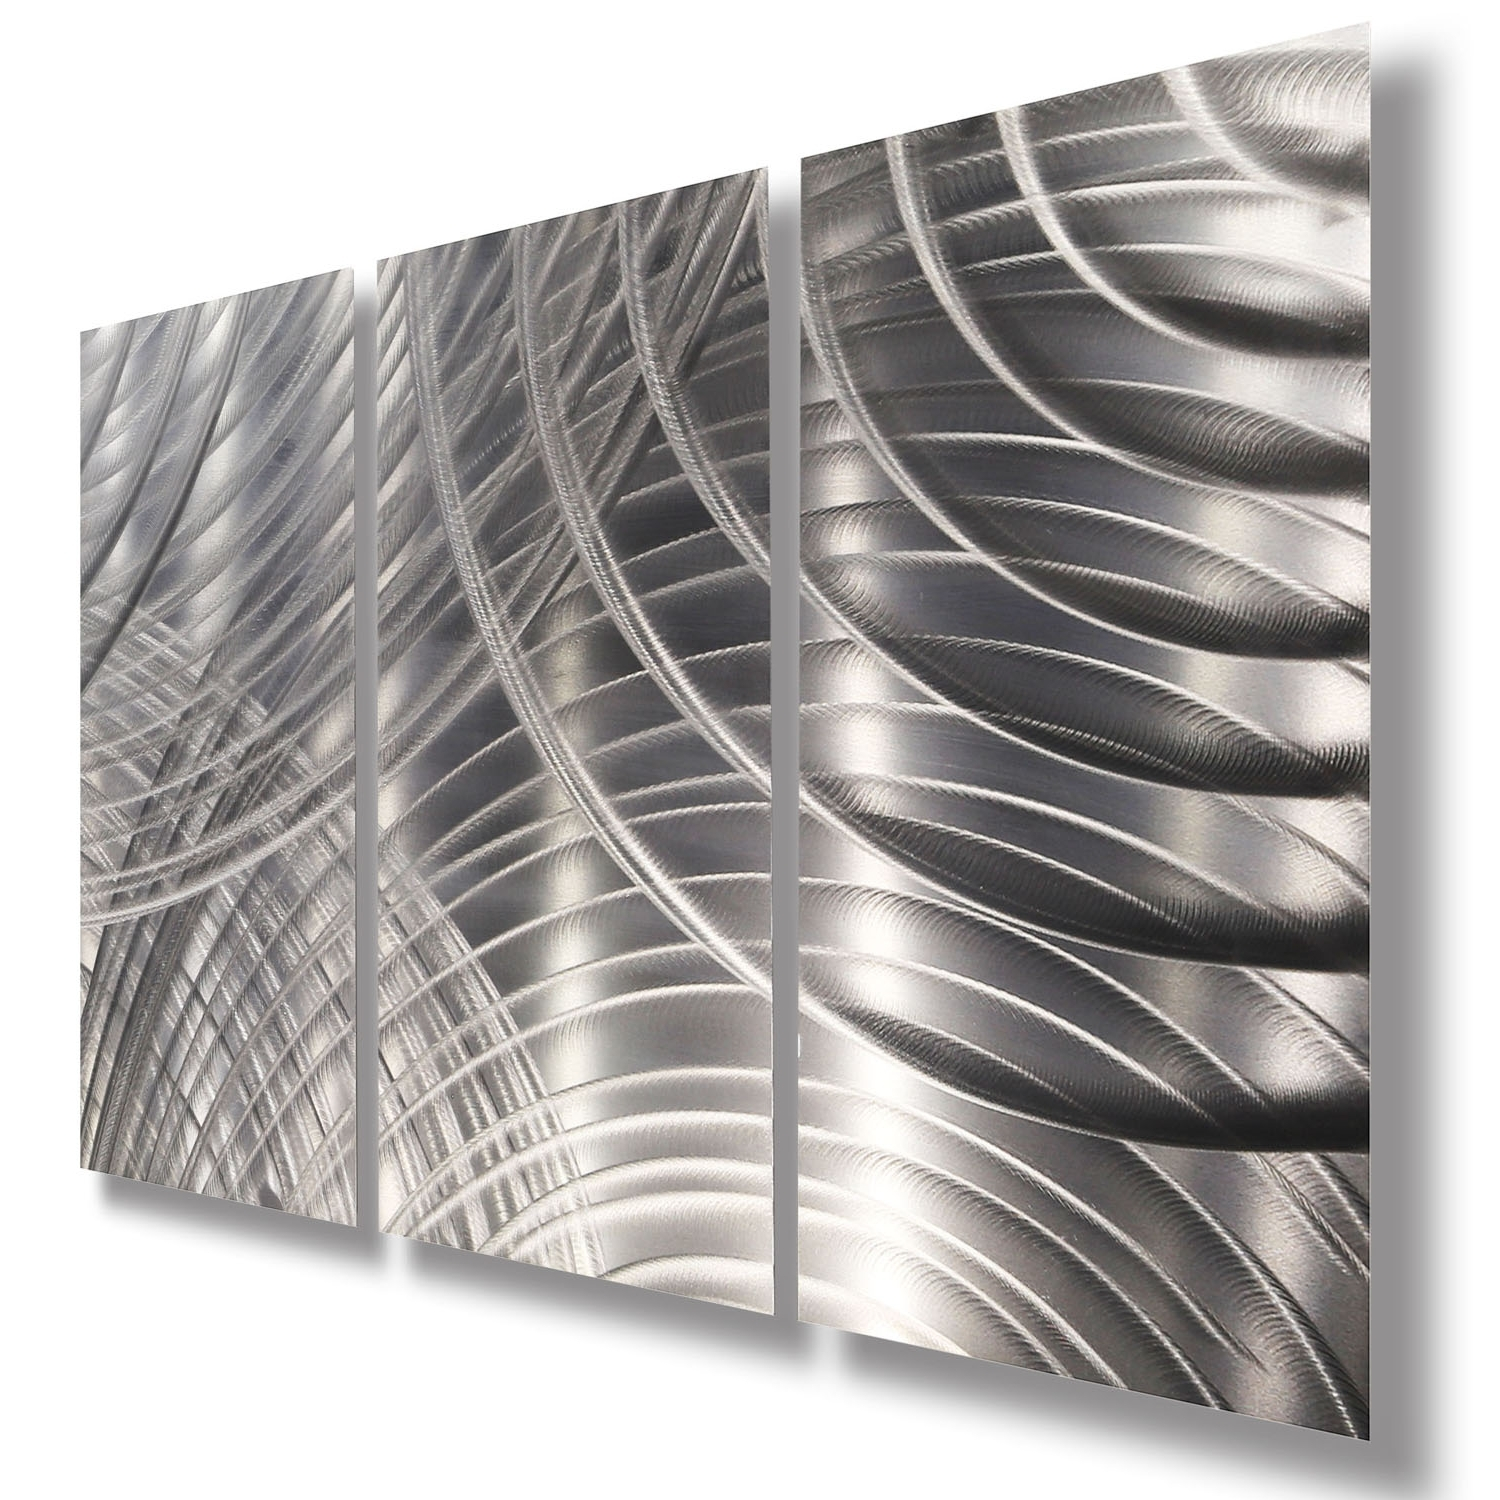 Black Silver Wall Art Within Latest Equinox Ii 3P – All Silver 3 Panel Metal Wall Art Accentjon (View 8 of 15)